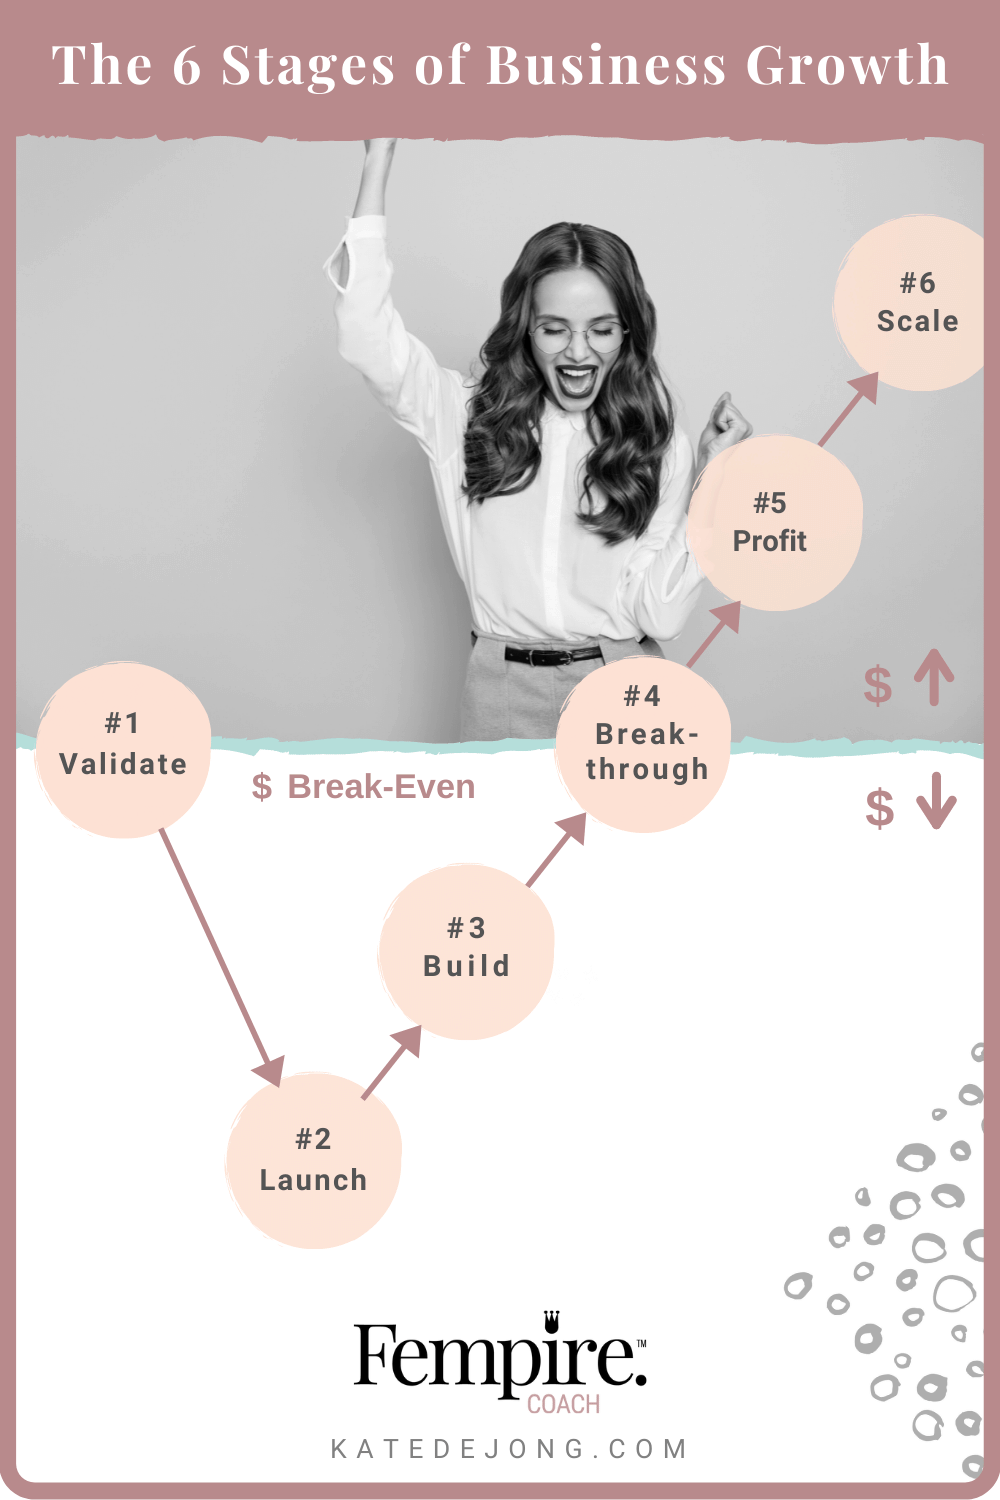 Have you been stuck in the break-even phase for too long in your business and you finally want to break through to profit and growth? Read on to discover how! #fempire #smallbusiness #businesscoach #businesscoachforwomen #entrepreneur #businessgrowth #growthstrategies